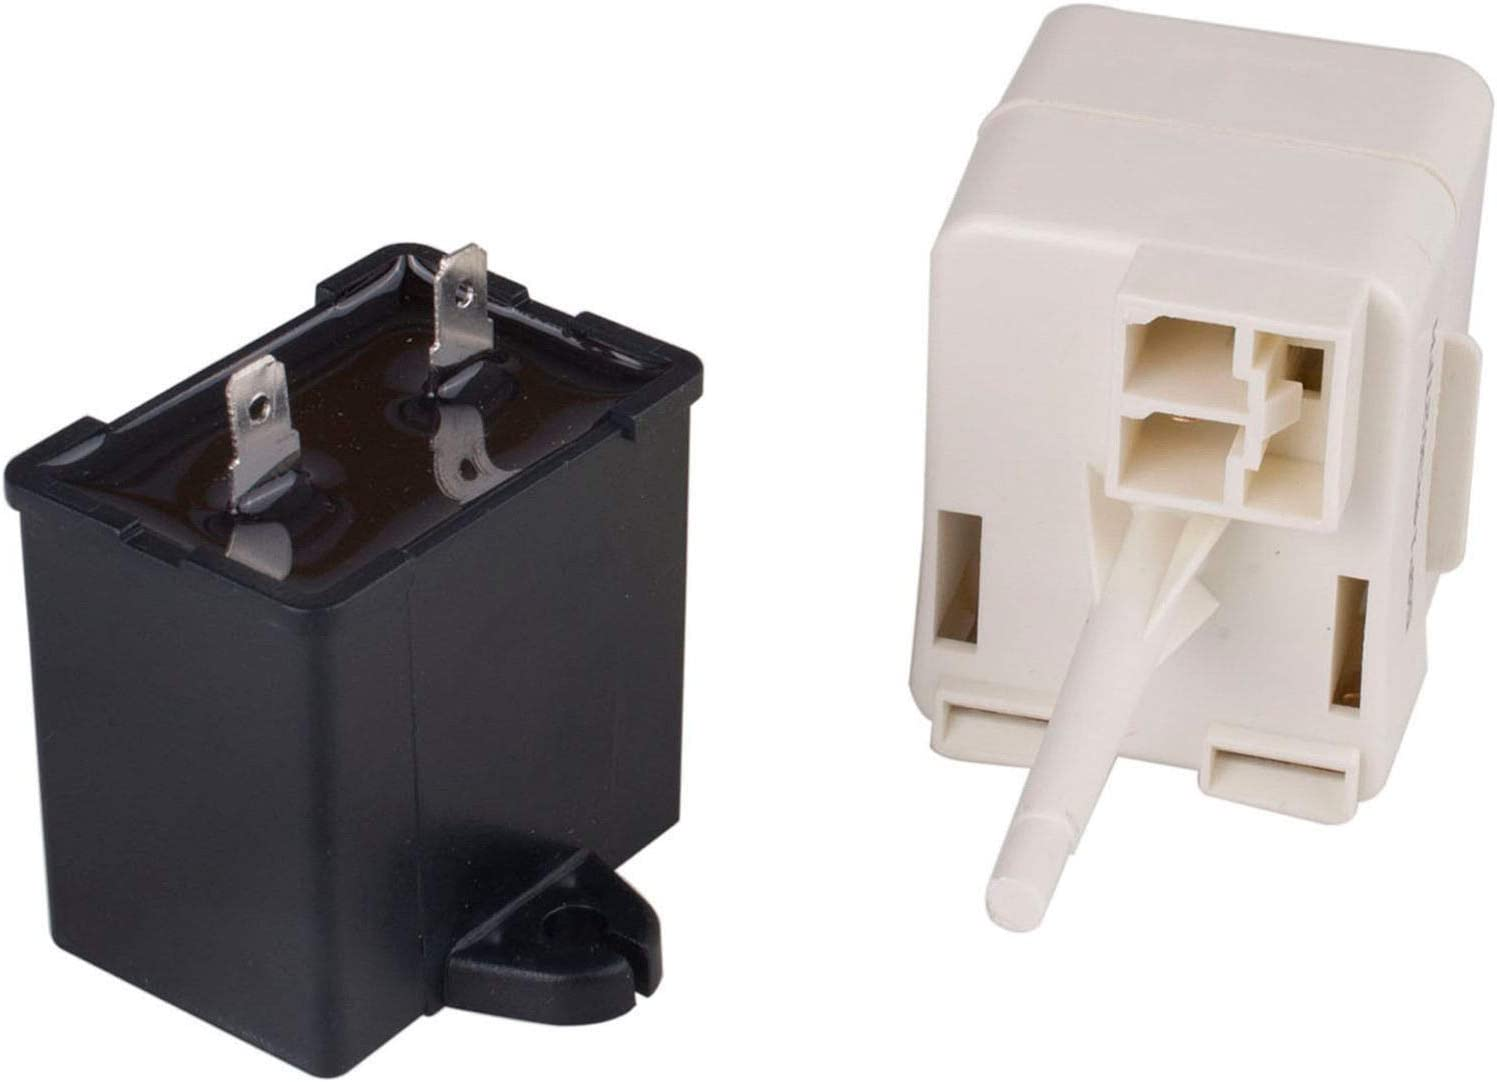 Replace part number: W10416065 W10613606 Refrigerator Compressor Start Relay and Capacitor Compatible with Whirlpool 67003186 fridges PS8746522 Kenmore